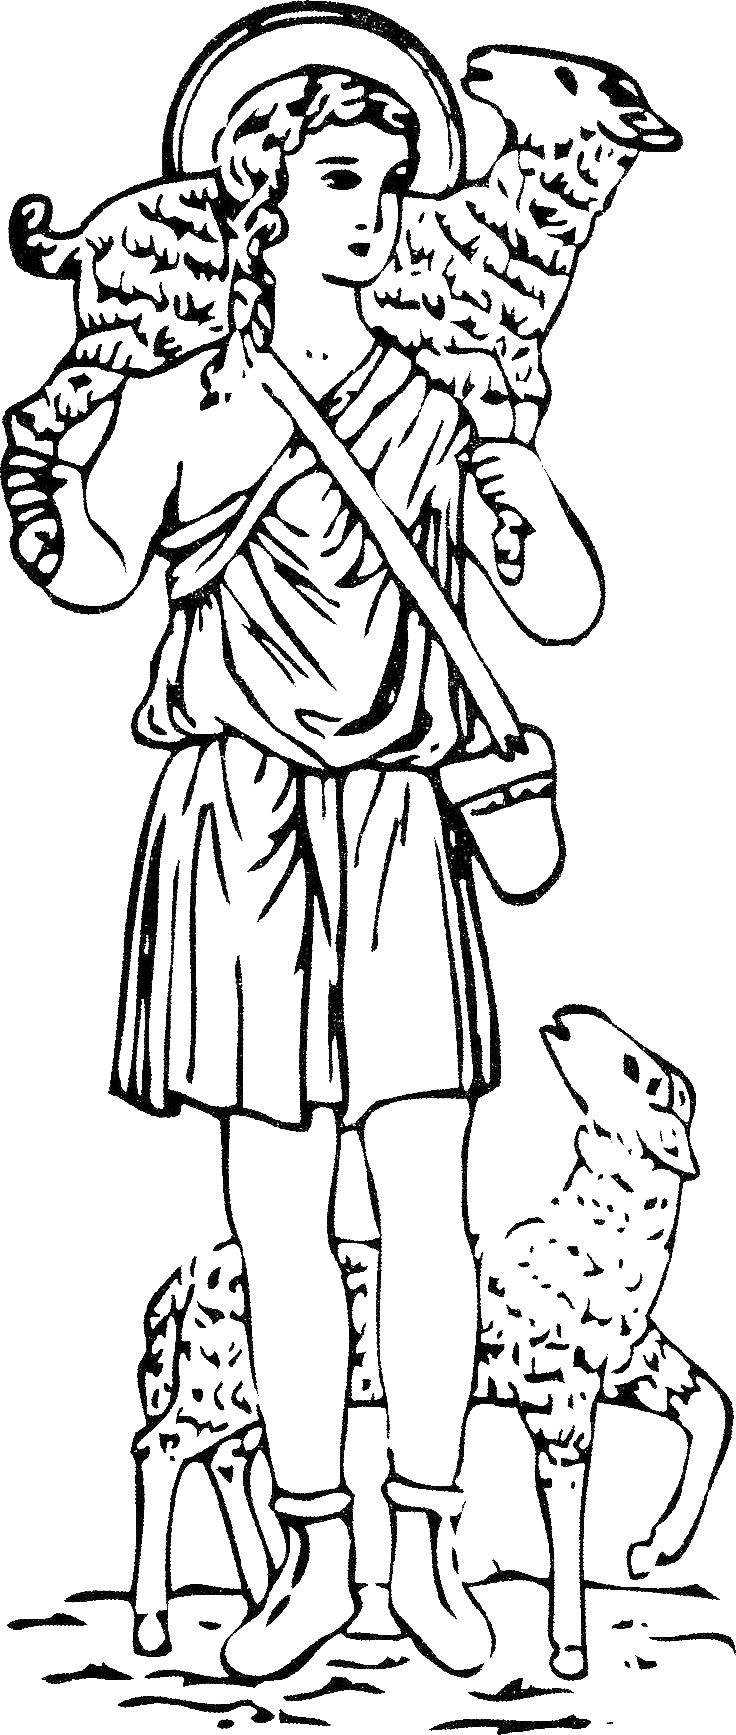 The Good Shepherd Coloring Page Jesus The Good Shepherd Coloring Pages